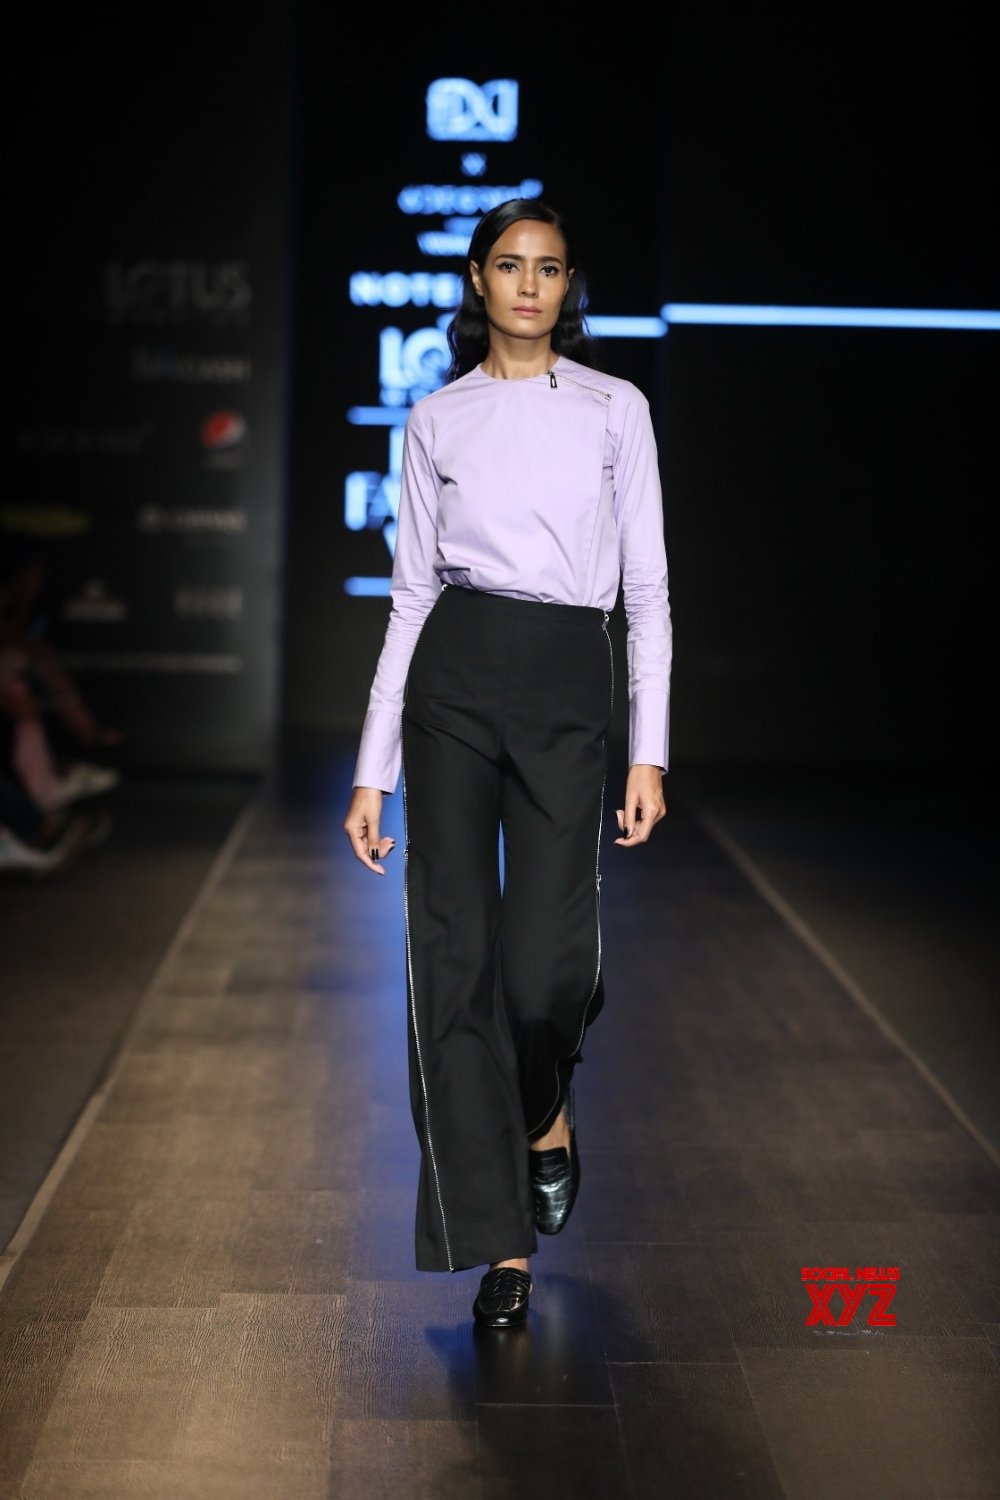 New Delhi: Lotus Make - up India Fashion Week - Day 4 - Notebook's collection showcased (Batch - 2) #Gallery